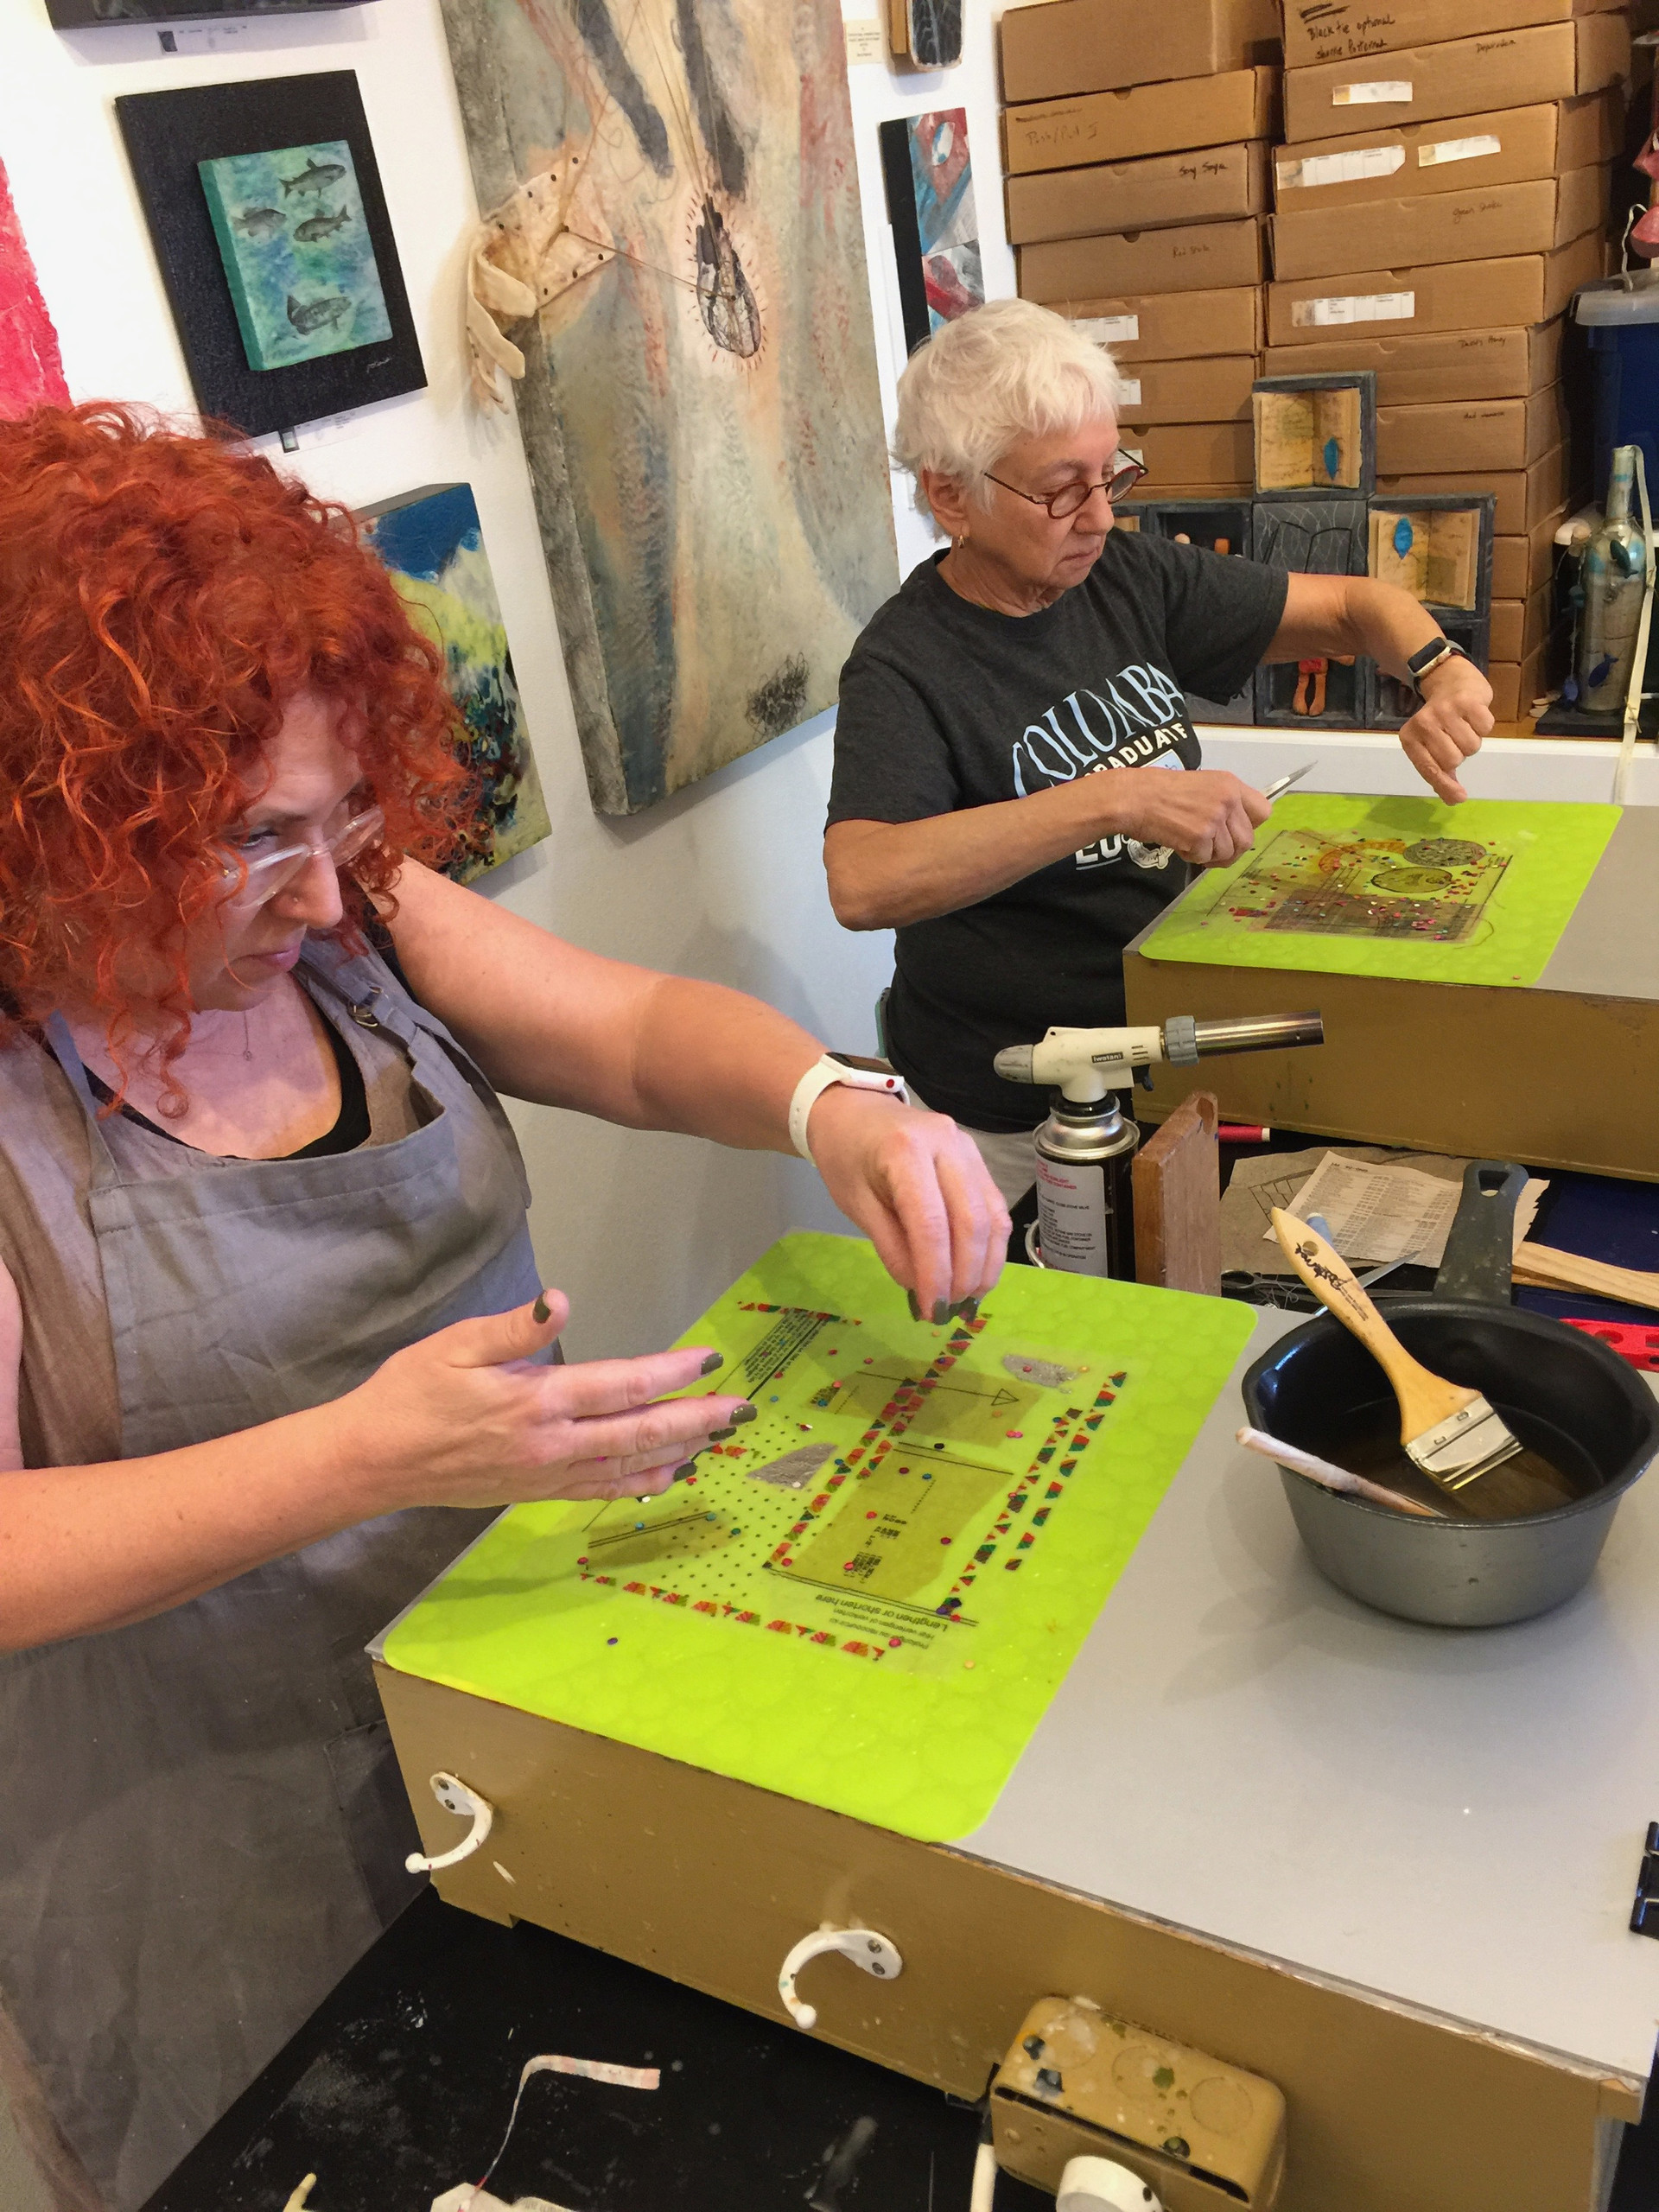 Deb and Fran at Paper Collage with Encaustic